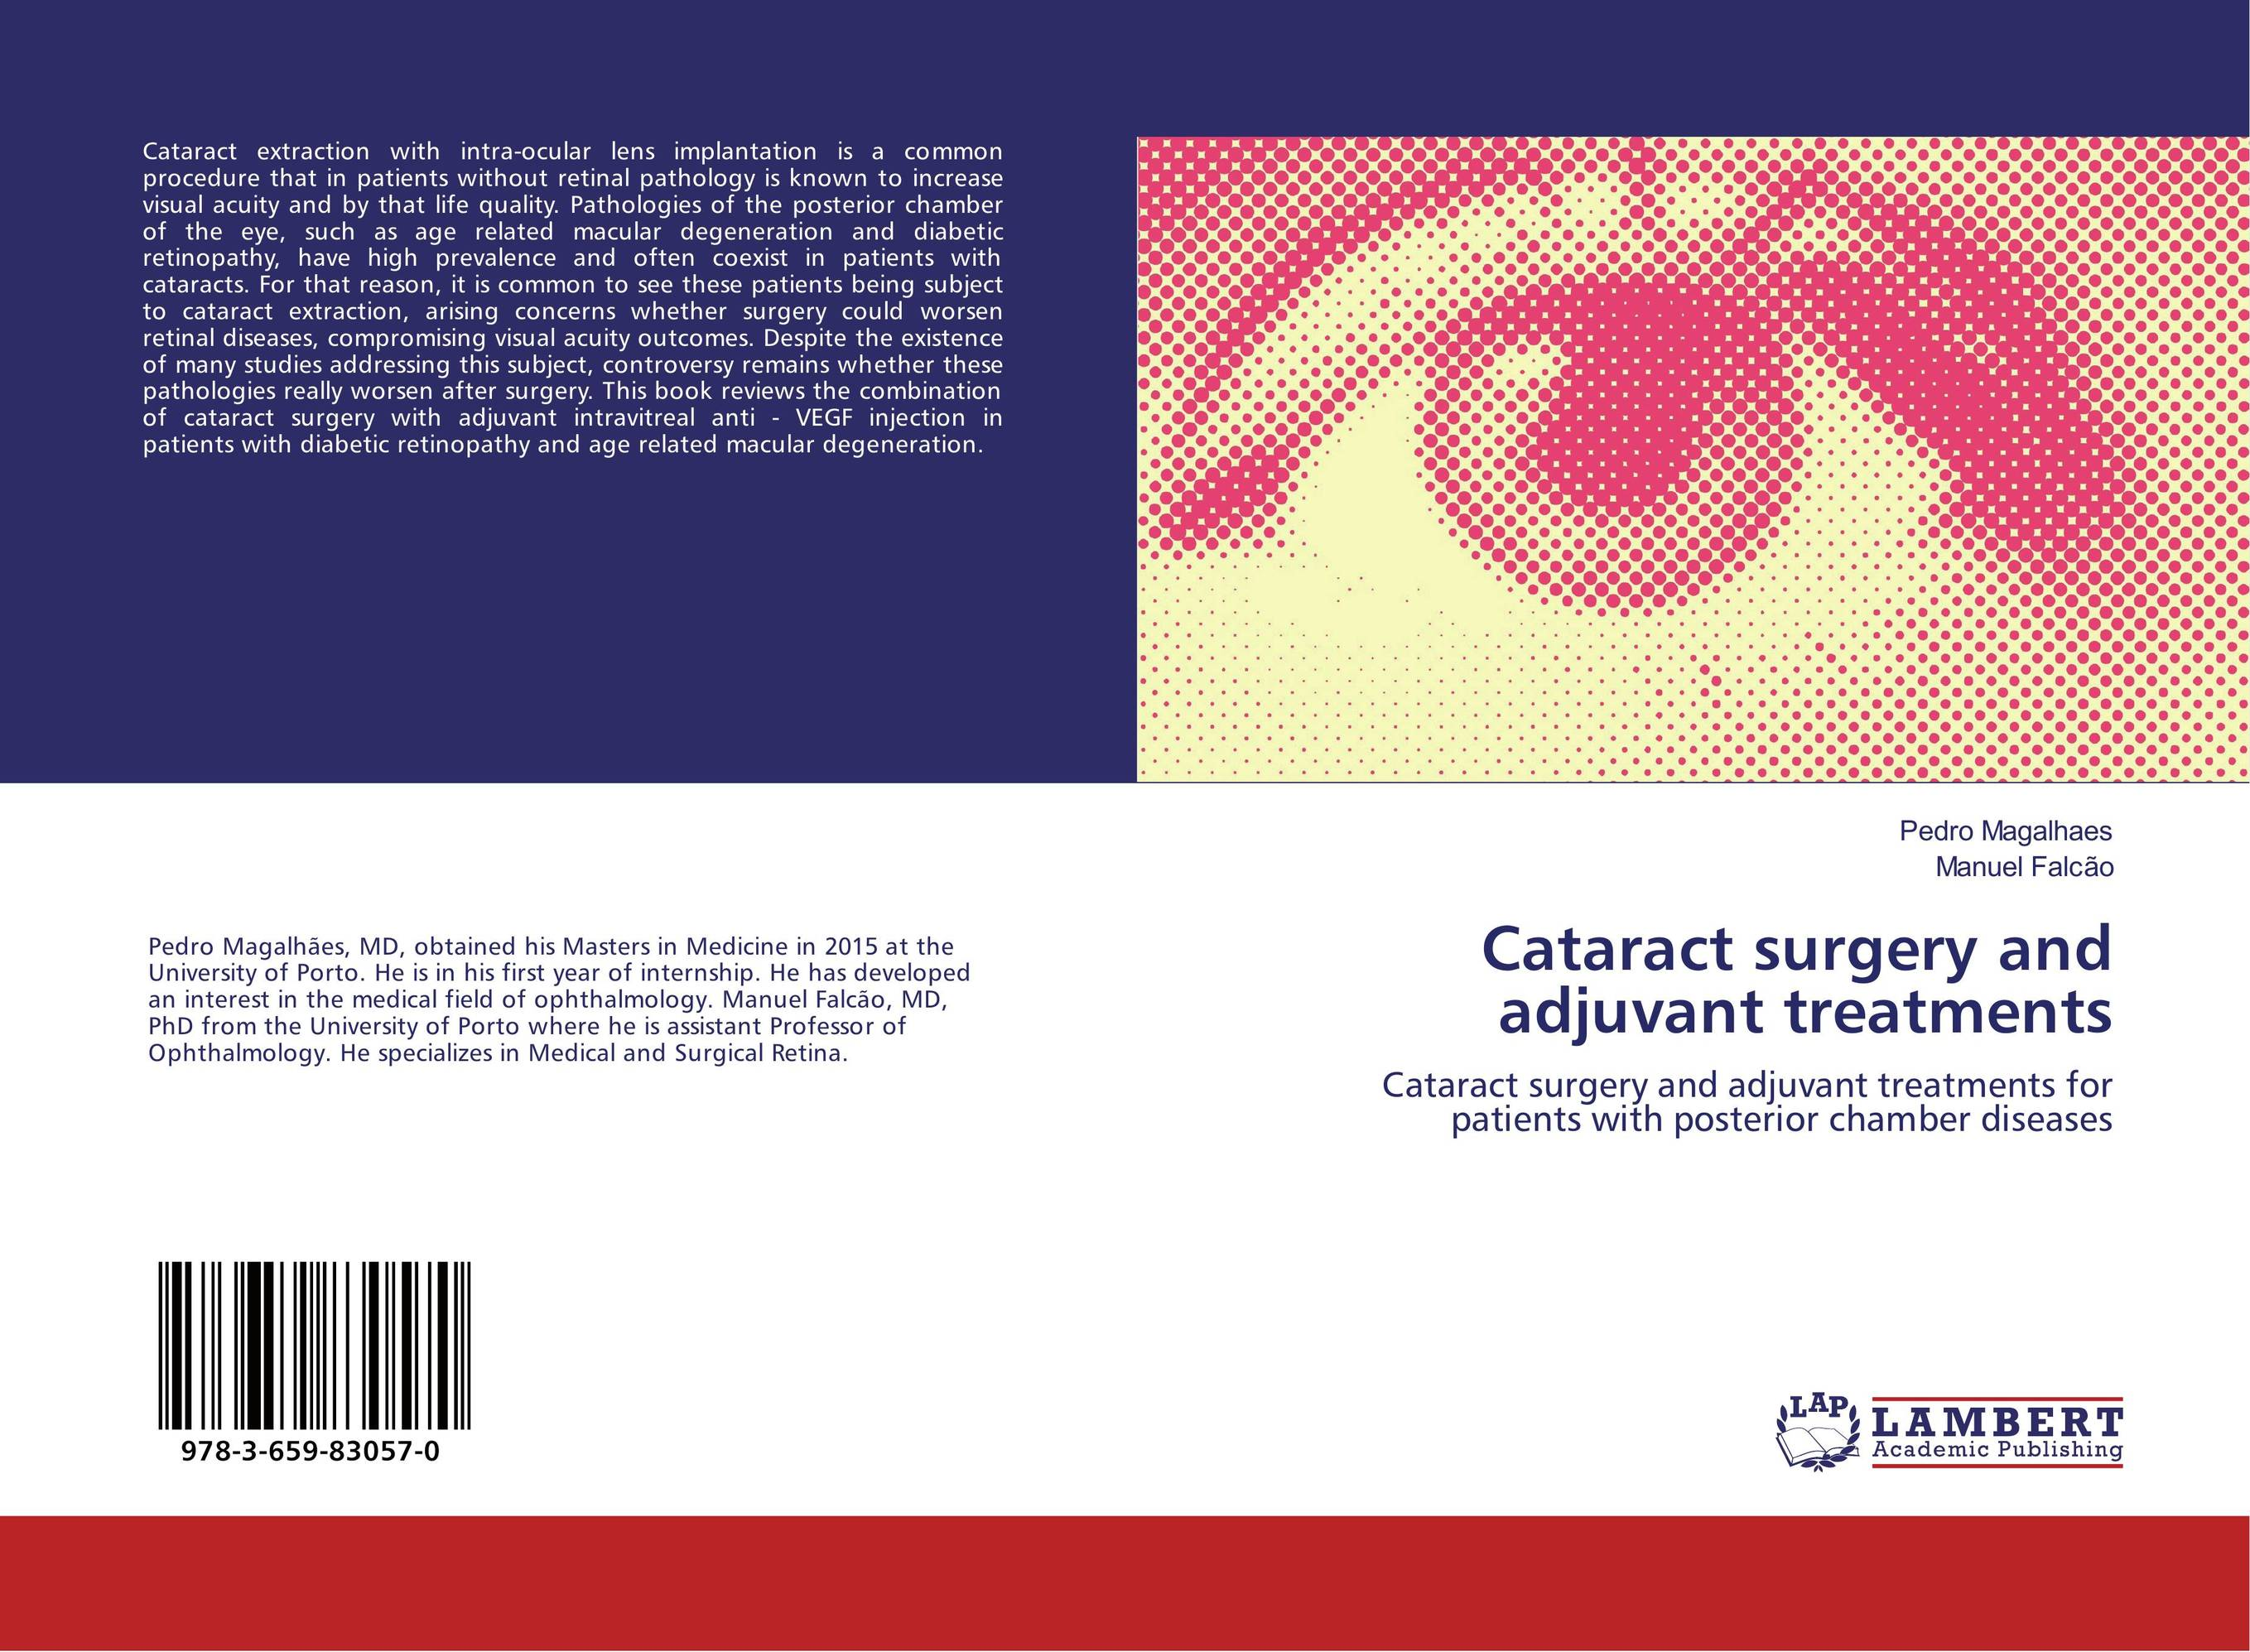 Cataract surgery and adjuvant treatments